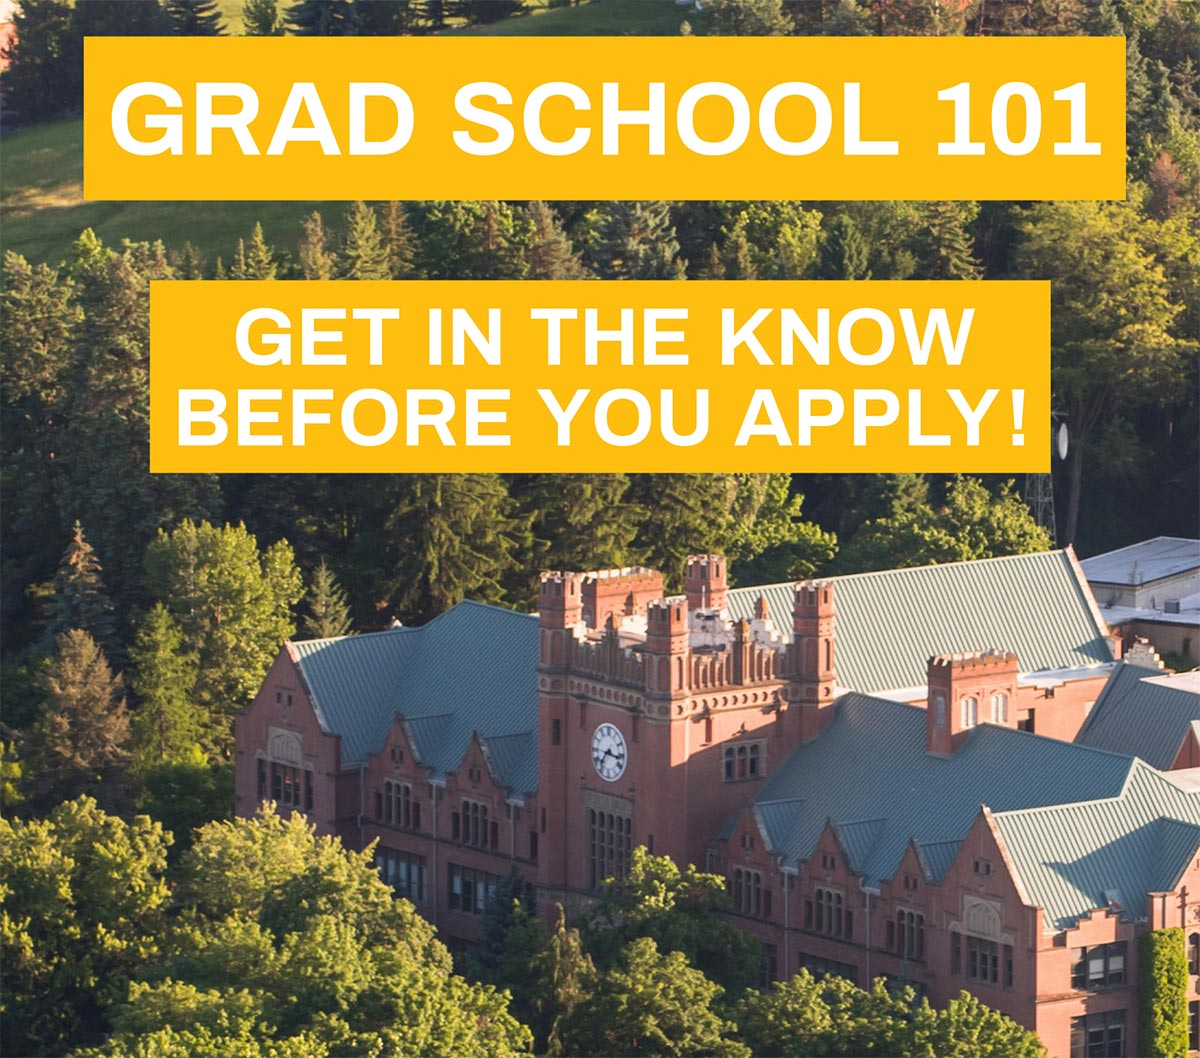 Grad school 101: Get in the know before you apply.